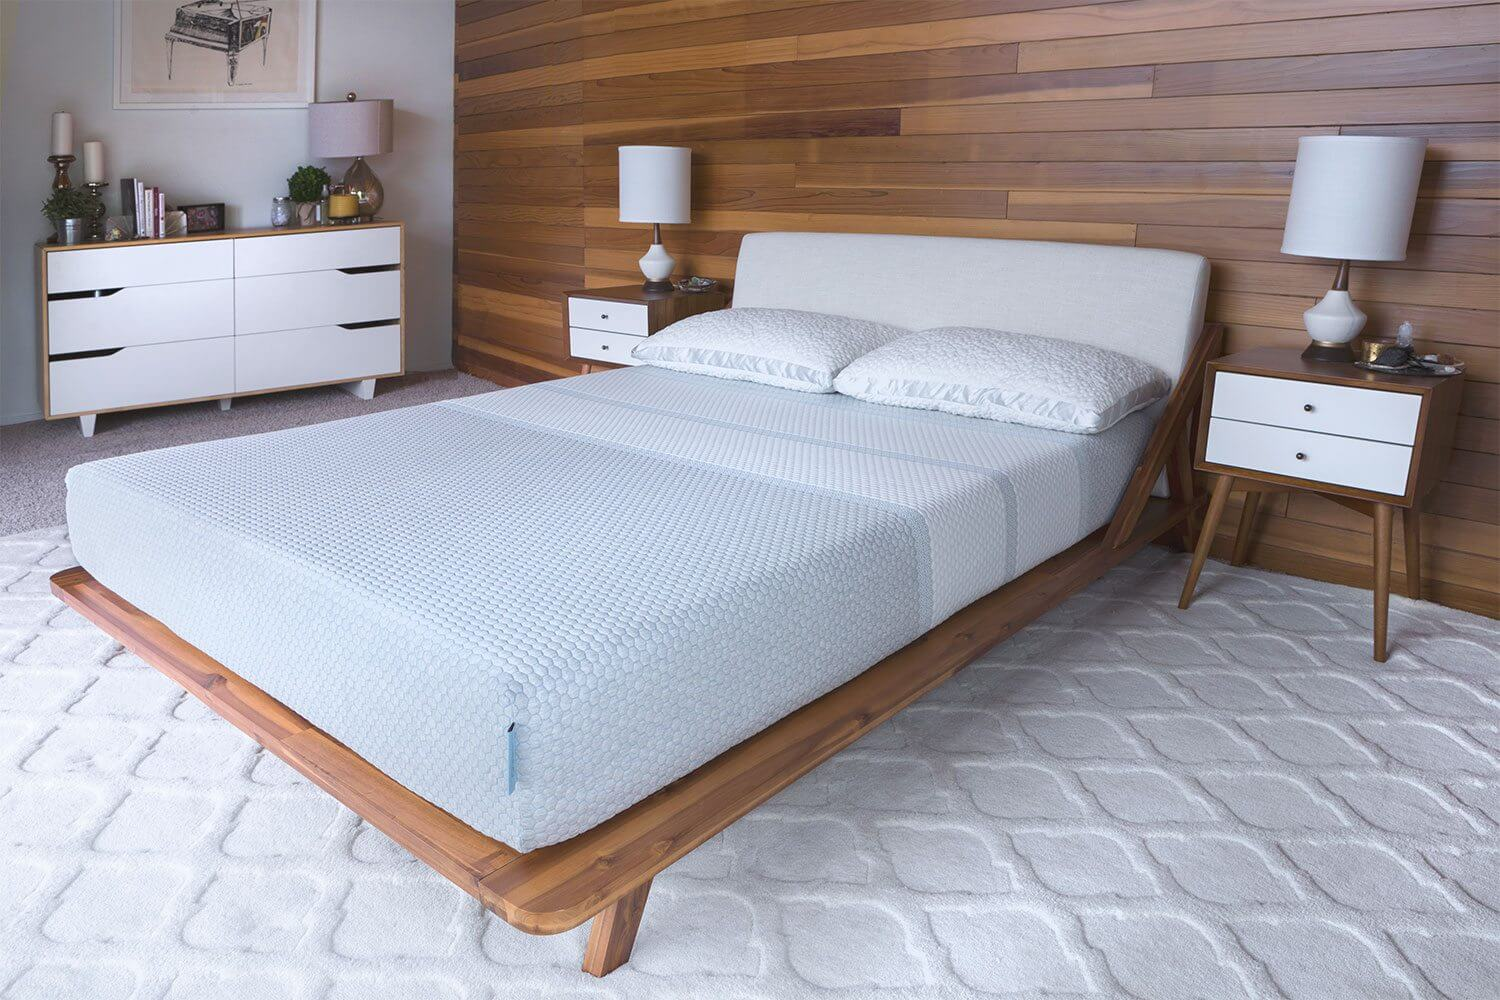 Brooklyn Bedding Bowery Mattress Review, Brooklyn Bedding Review, Bowery mattress review, Mattress Reviews, Online mattress reviews